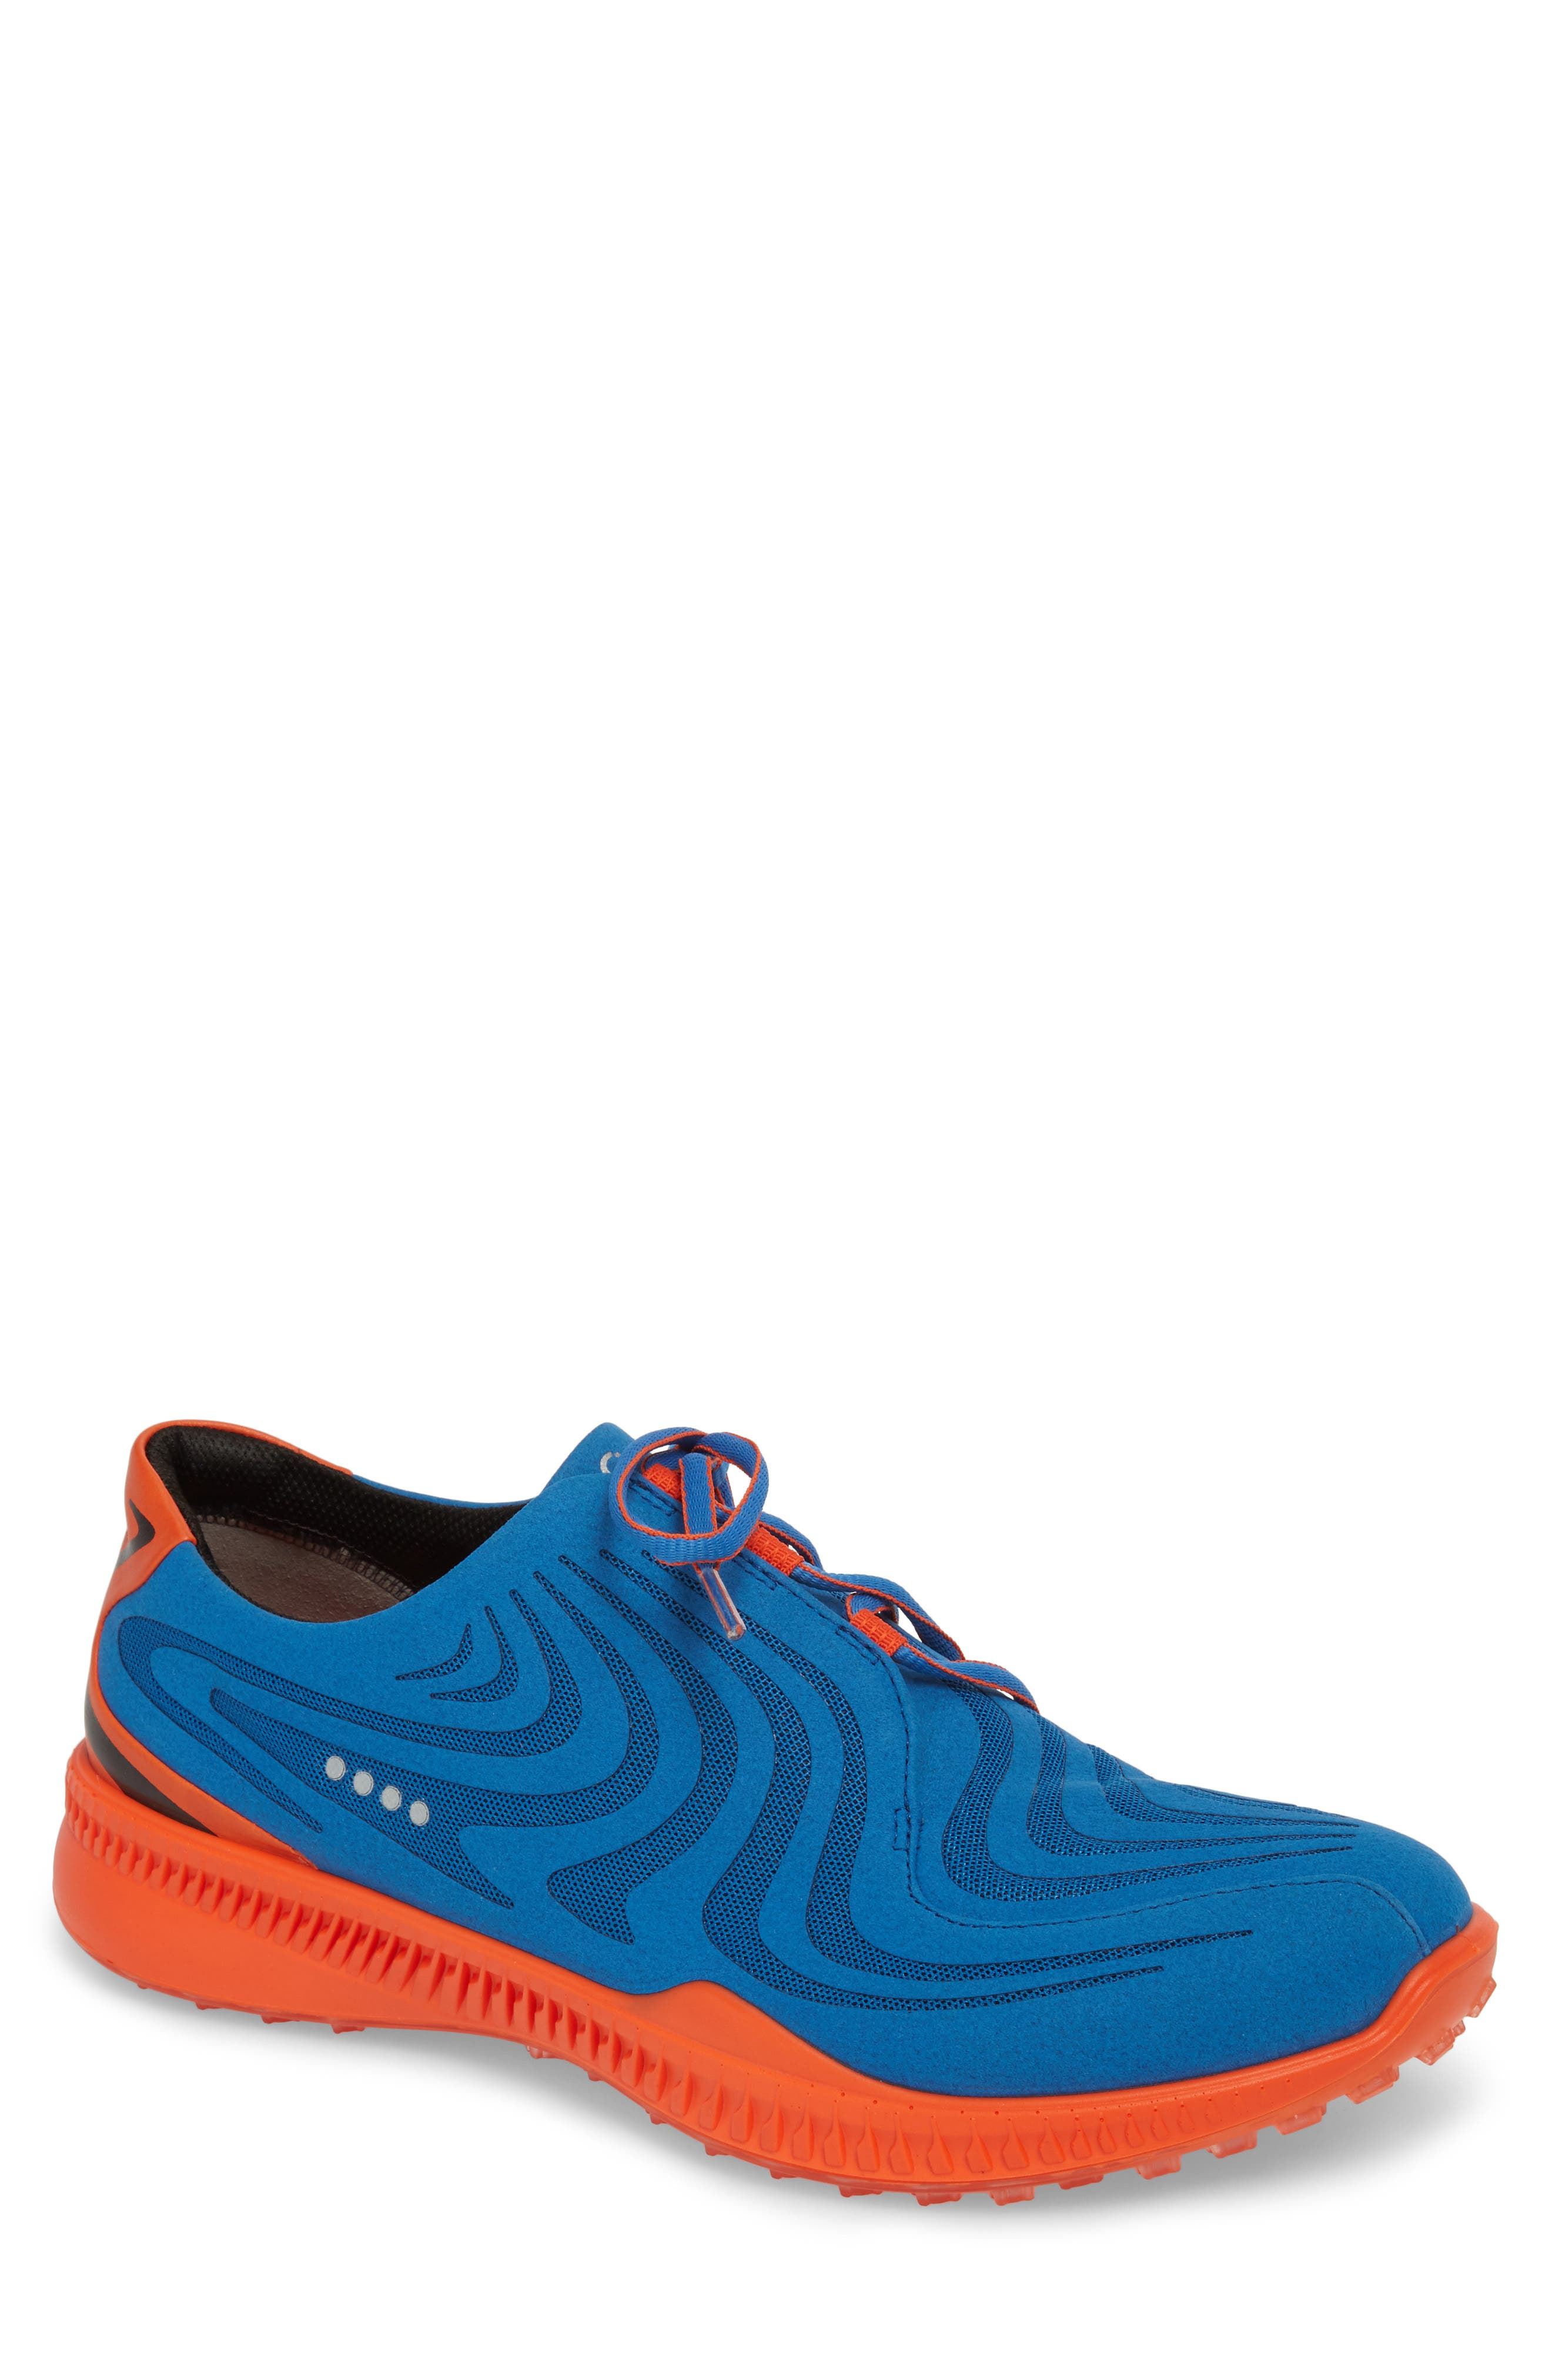 Golf S-Drive Water Resistant Shoe,                         Main,                         color, Bermuda Blue Leather